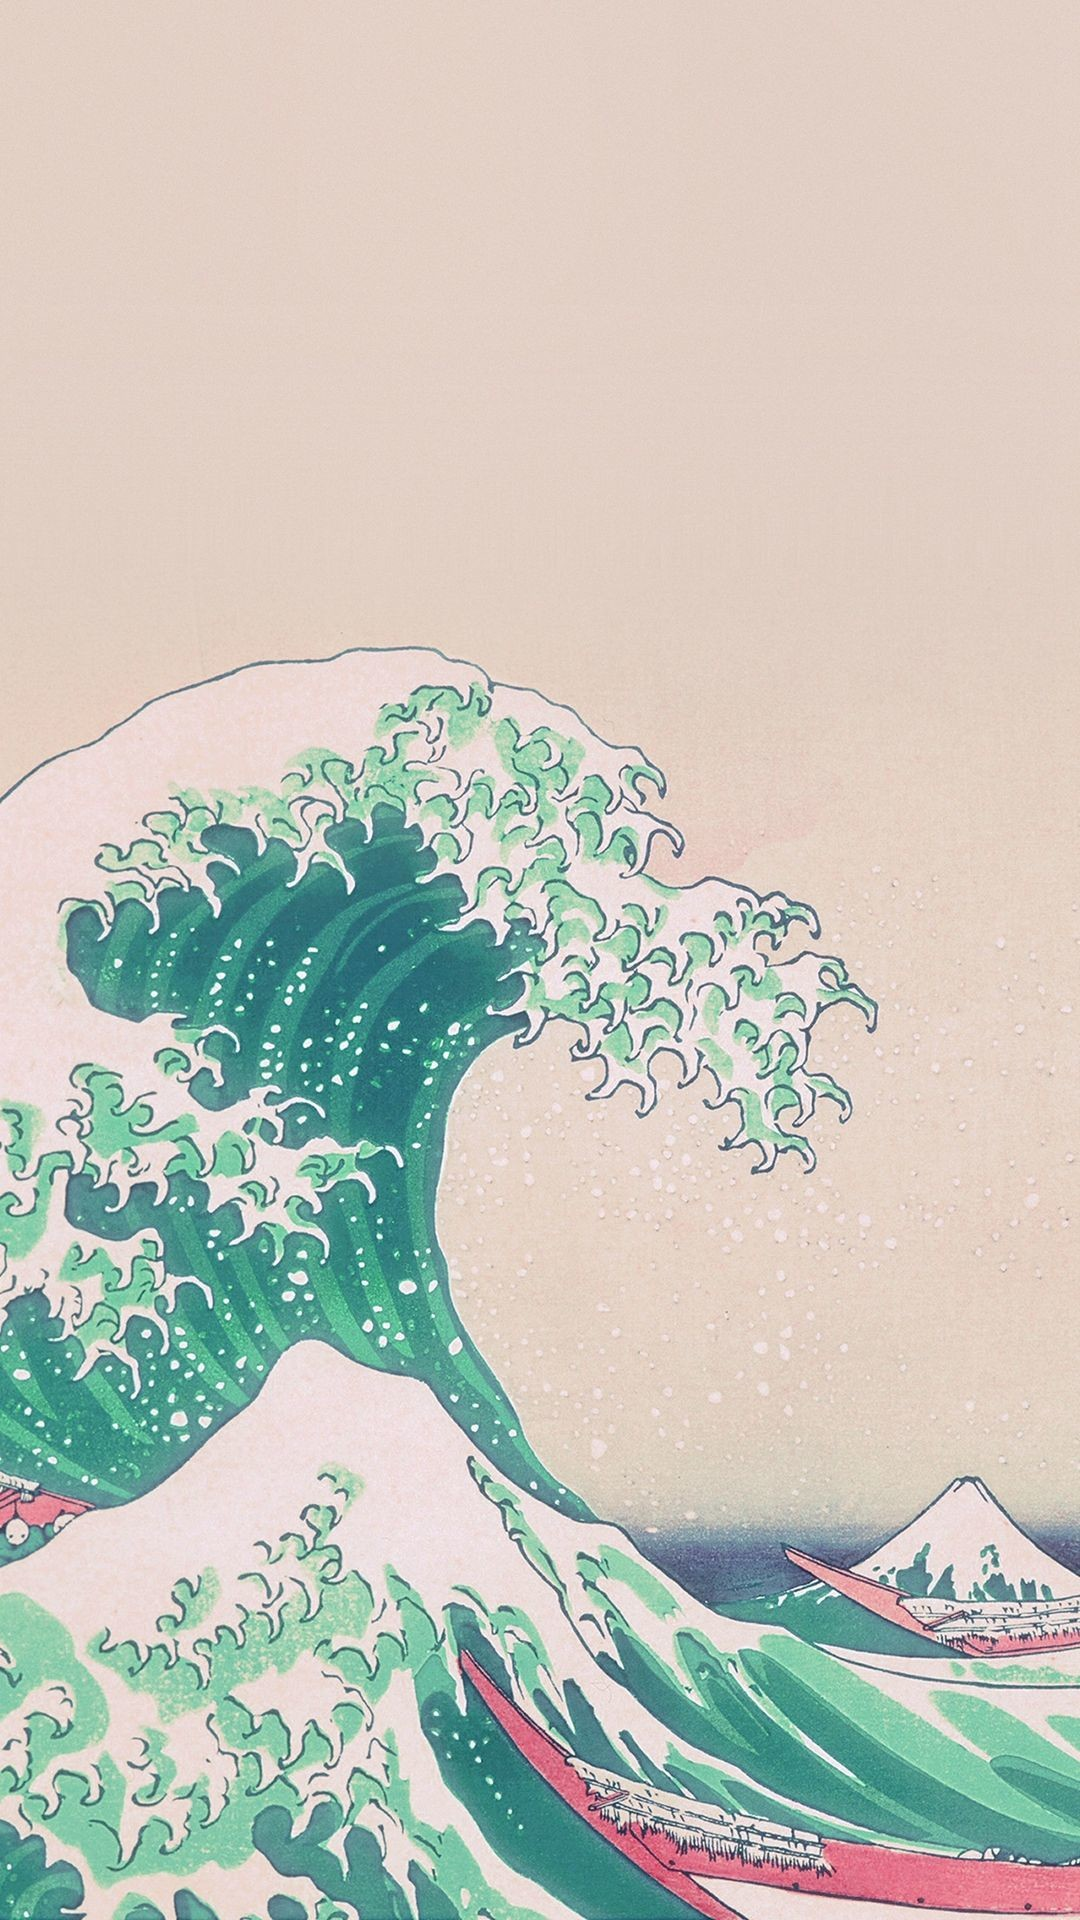 Res: 1080x1920, Japanese painting old wallpaper. Sea, painting, japan, ancient, iphone,  android, wallpaper.